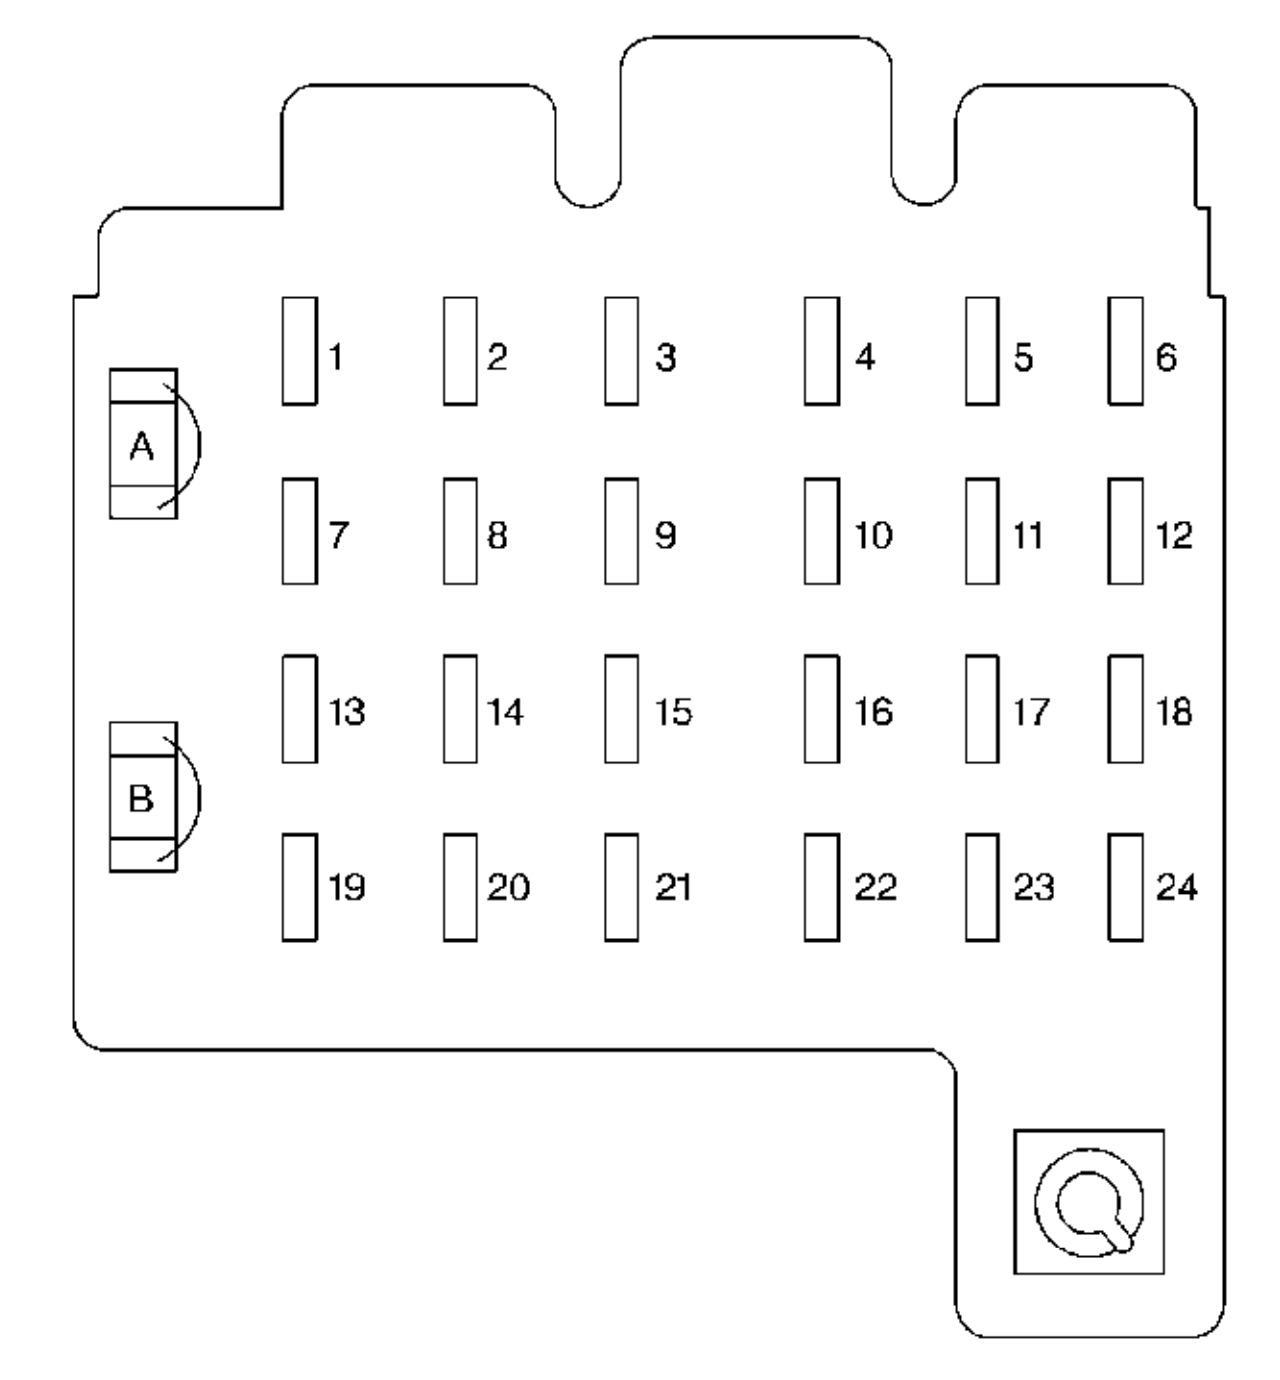 1999 Chevy Suburban Fuse Box Diagram Just Wiring Data 1988 Chevy G20 Fuse  Diagram 1998 Chevy Lumina Fuse Box Diagram